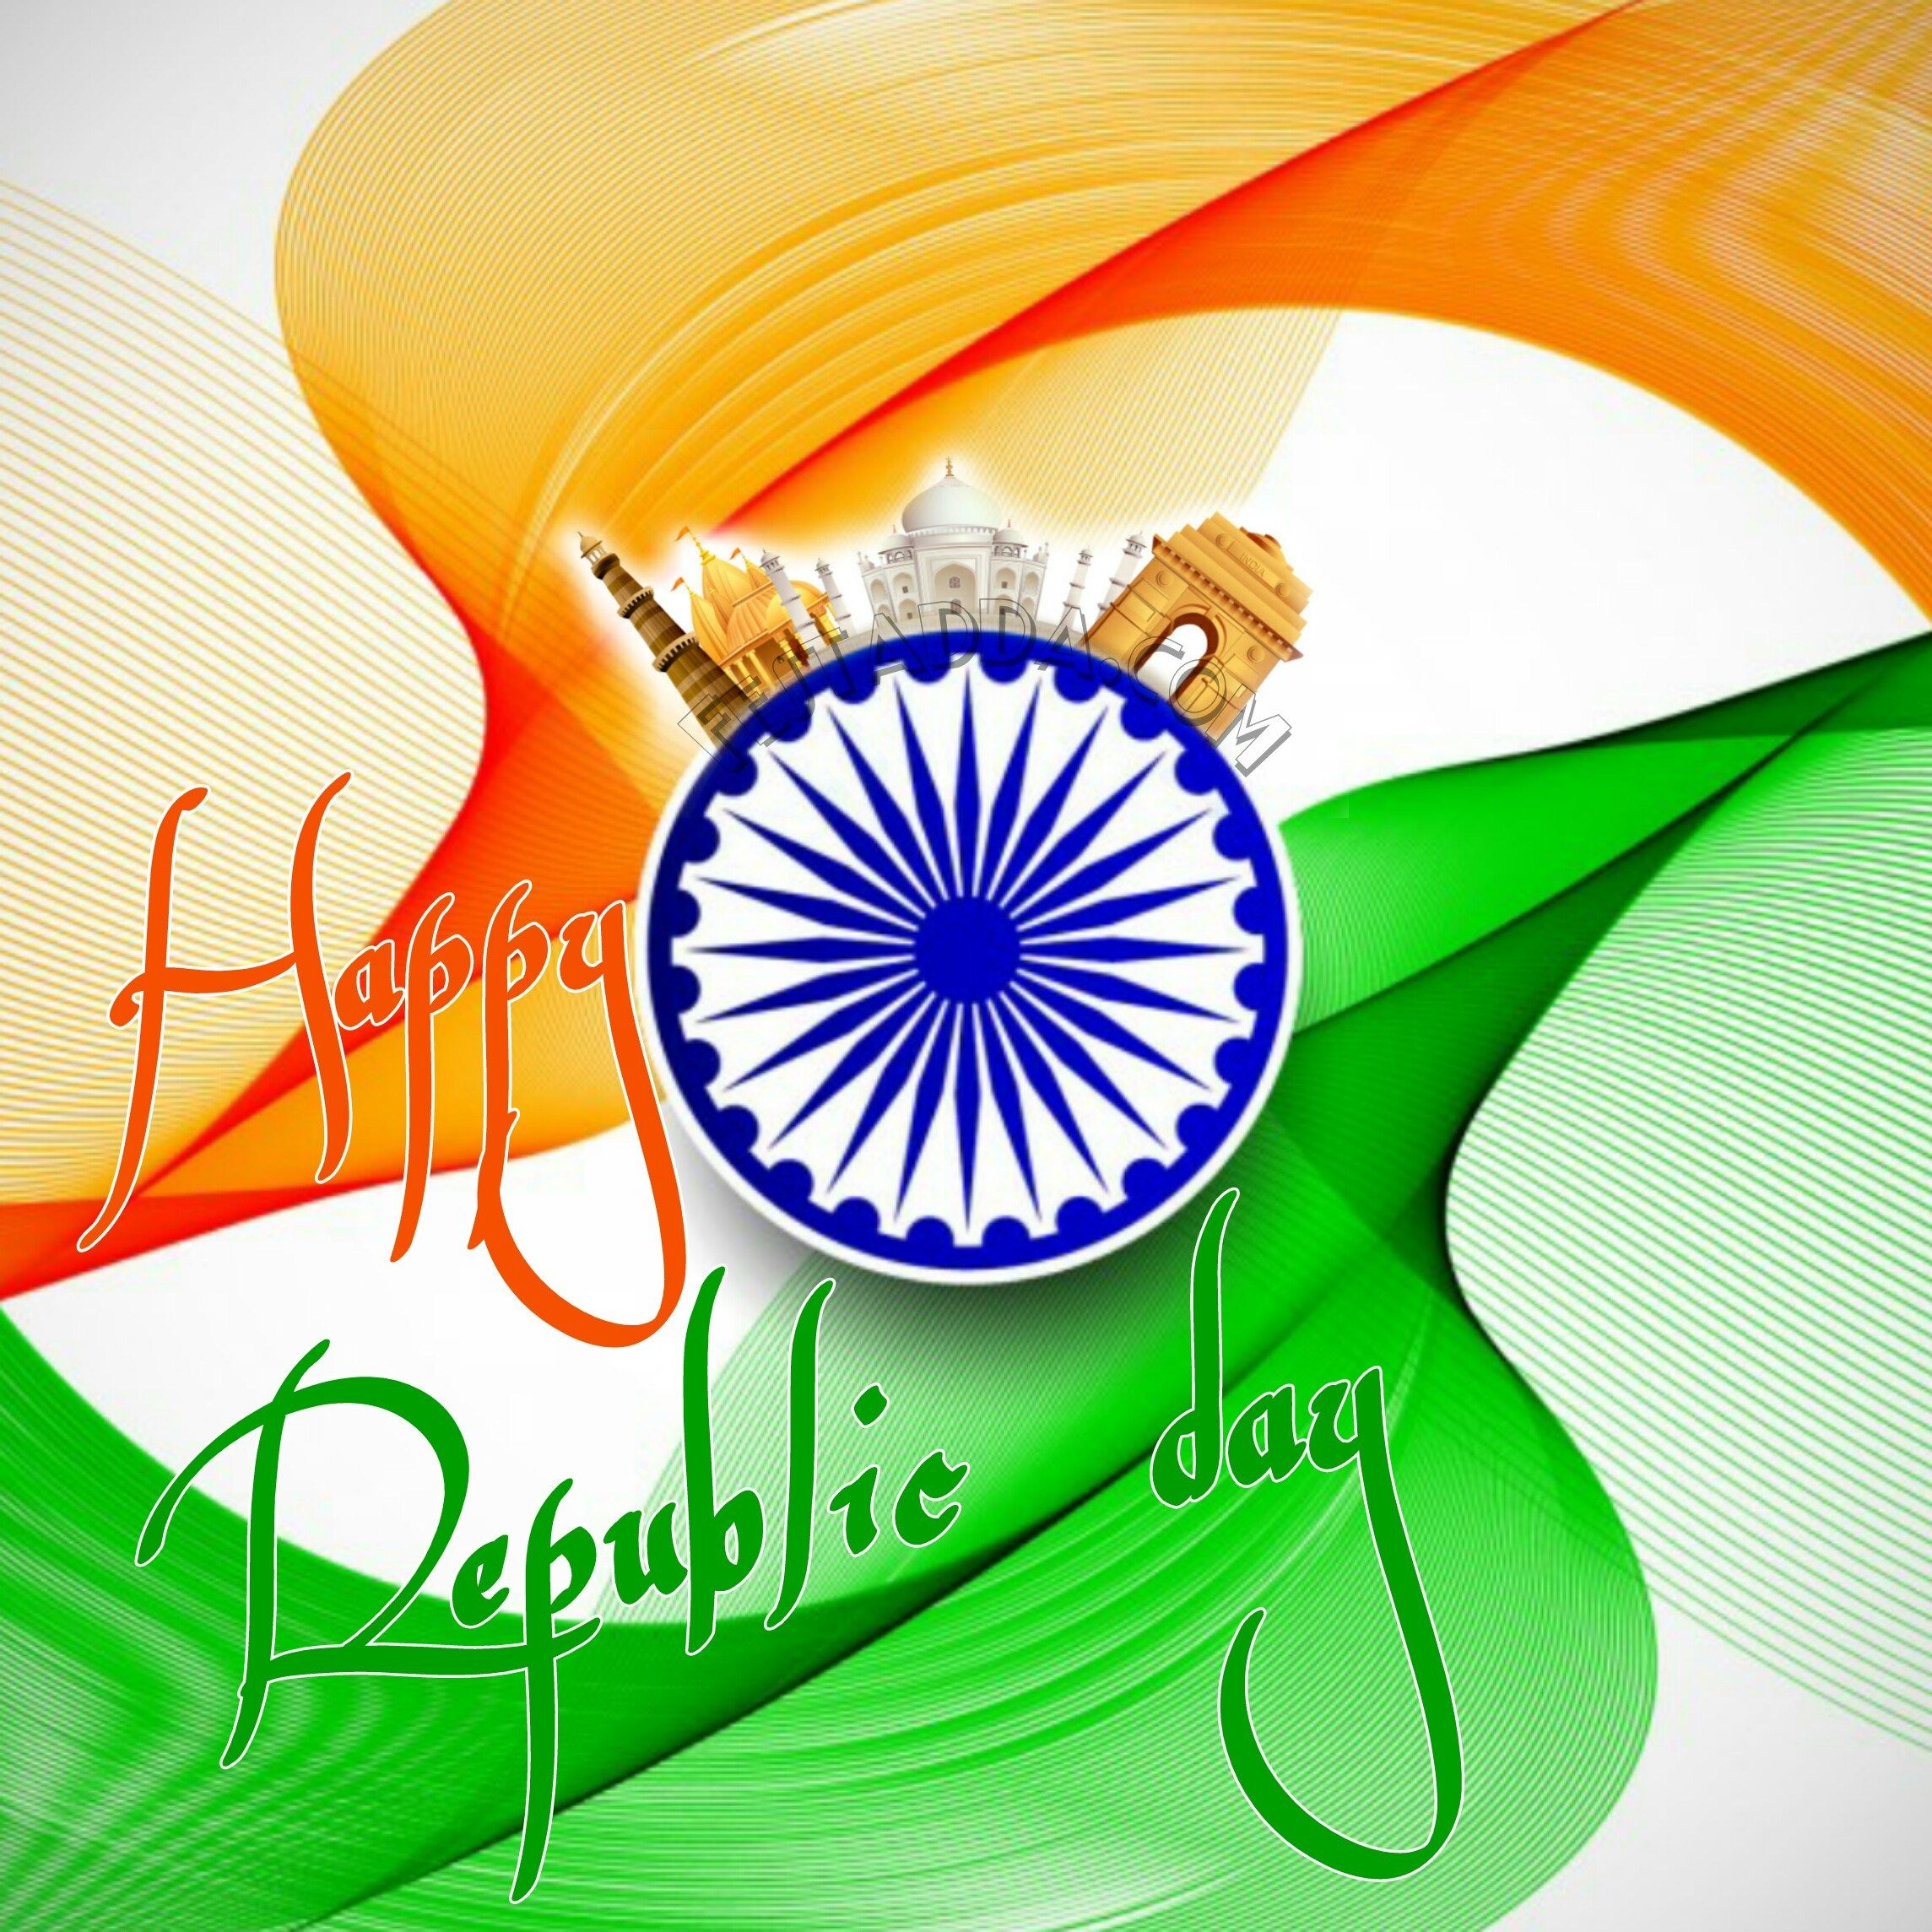 Happy Republic Day 2020 Quotes Gif Files Pics For Whatsapp Status Full Hd Republic Day Indian Flag Wallpaper Independence Day Wallpaper